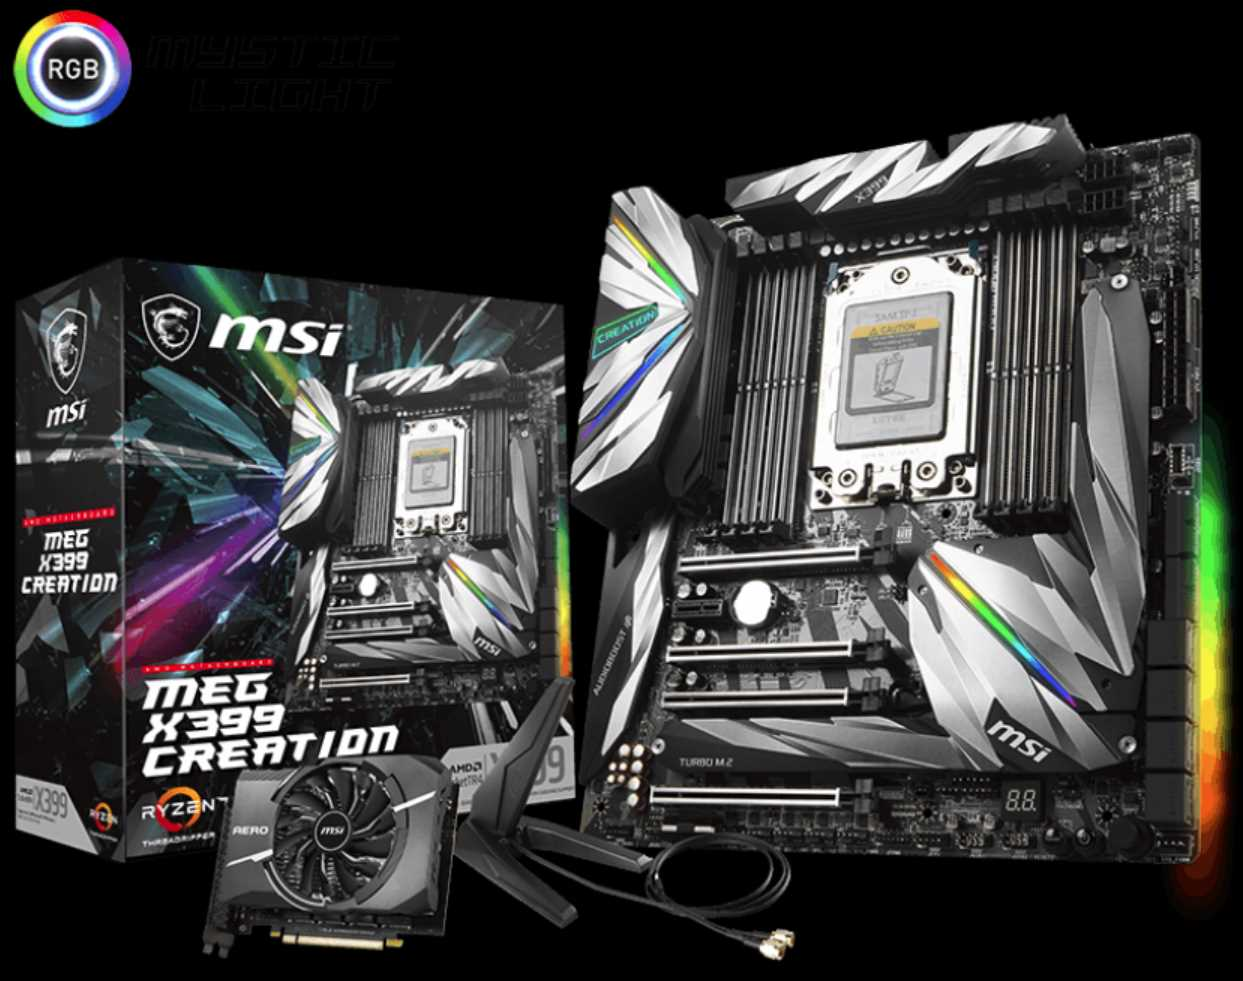 MSI MEG X399 Creation Threadripper Motherboard Review | eTeknix